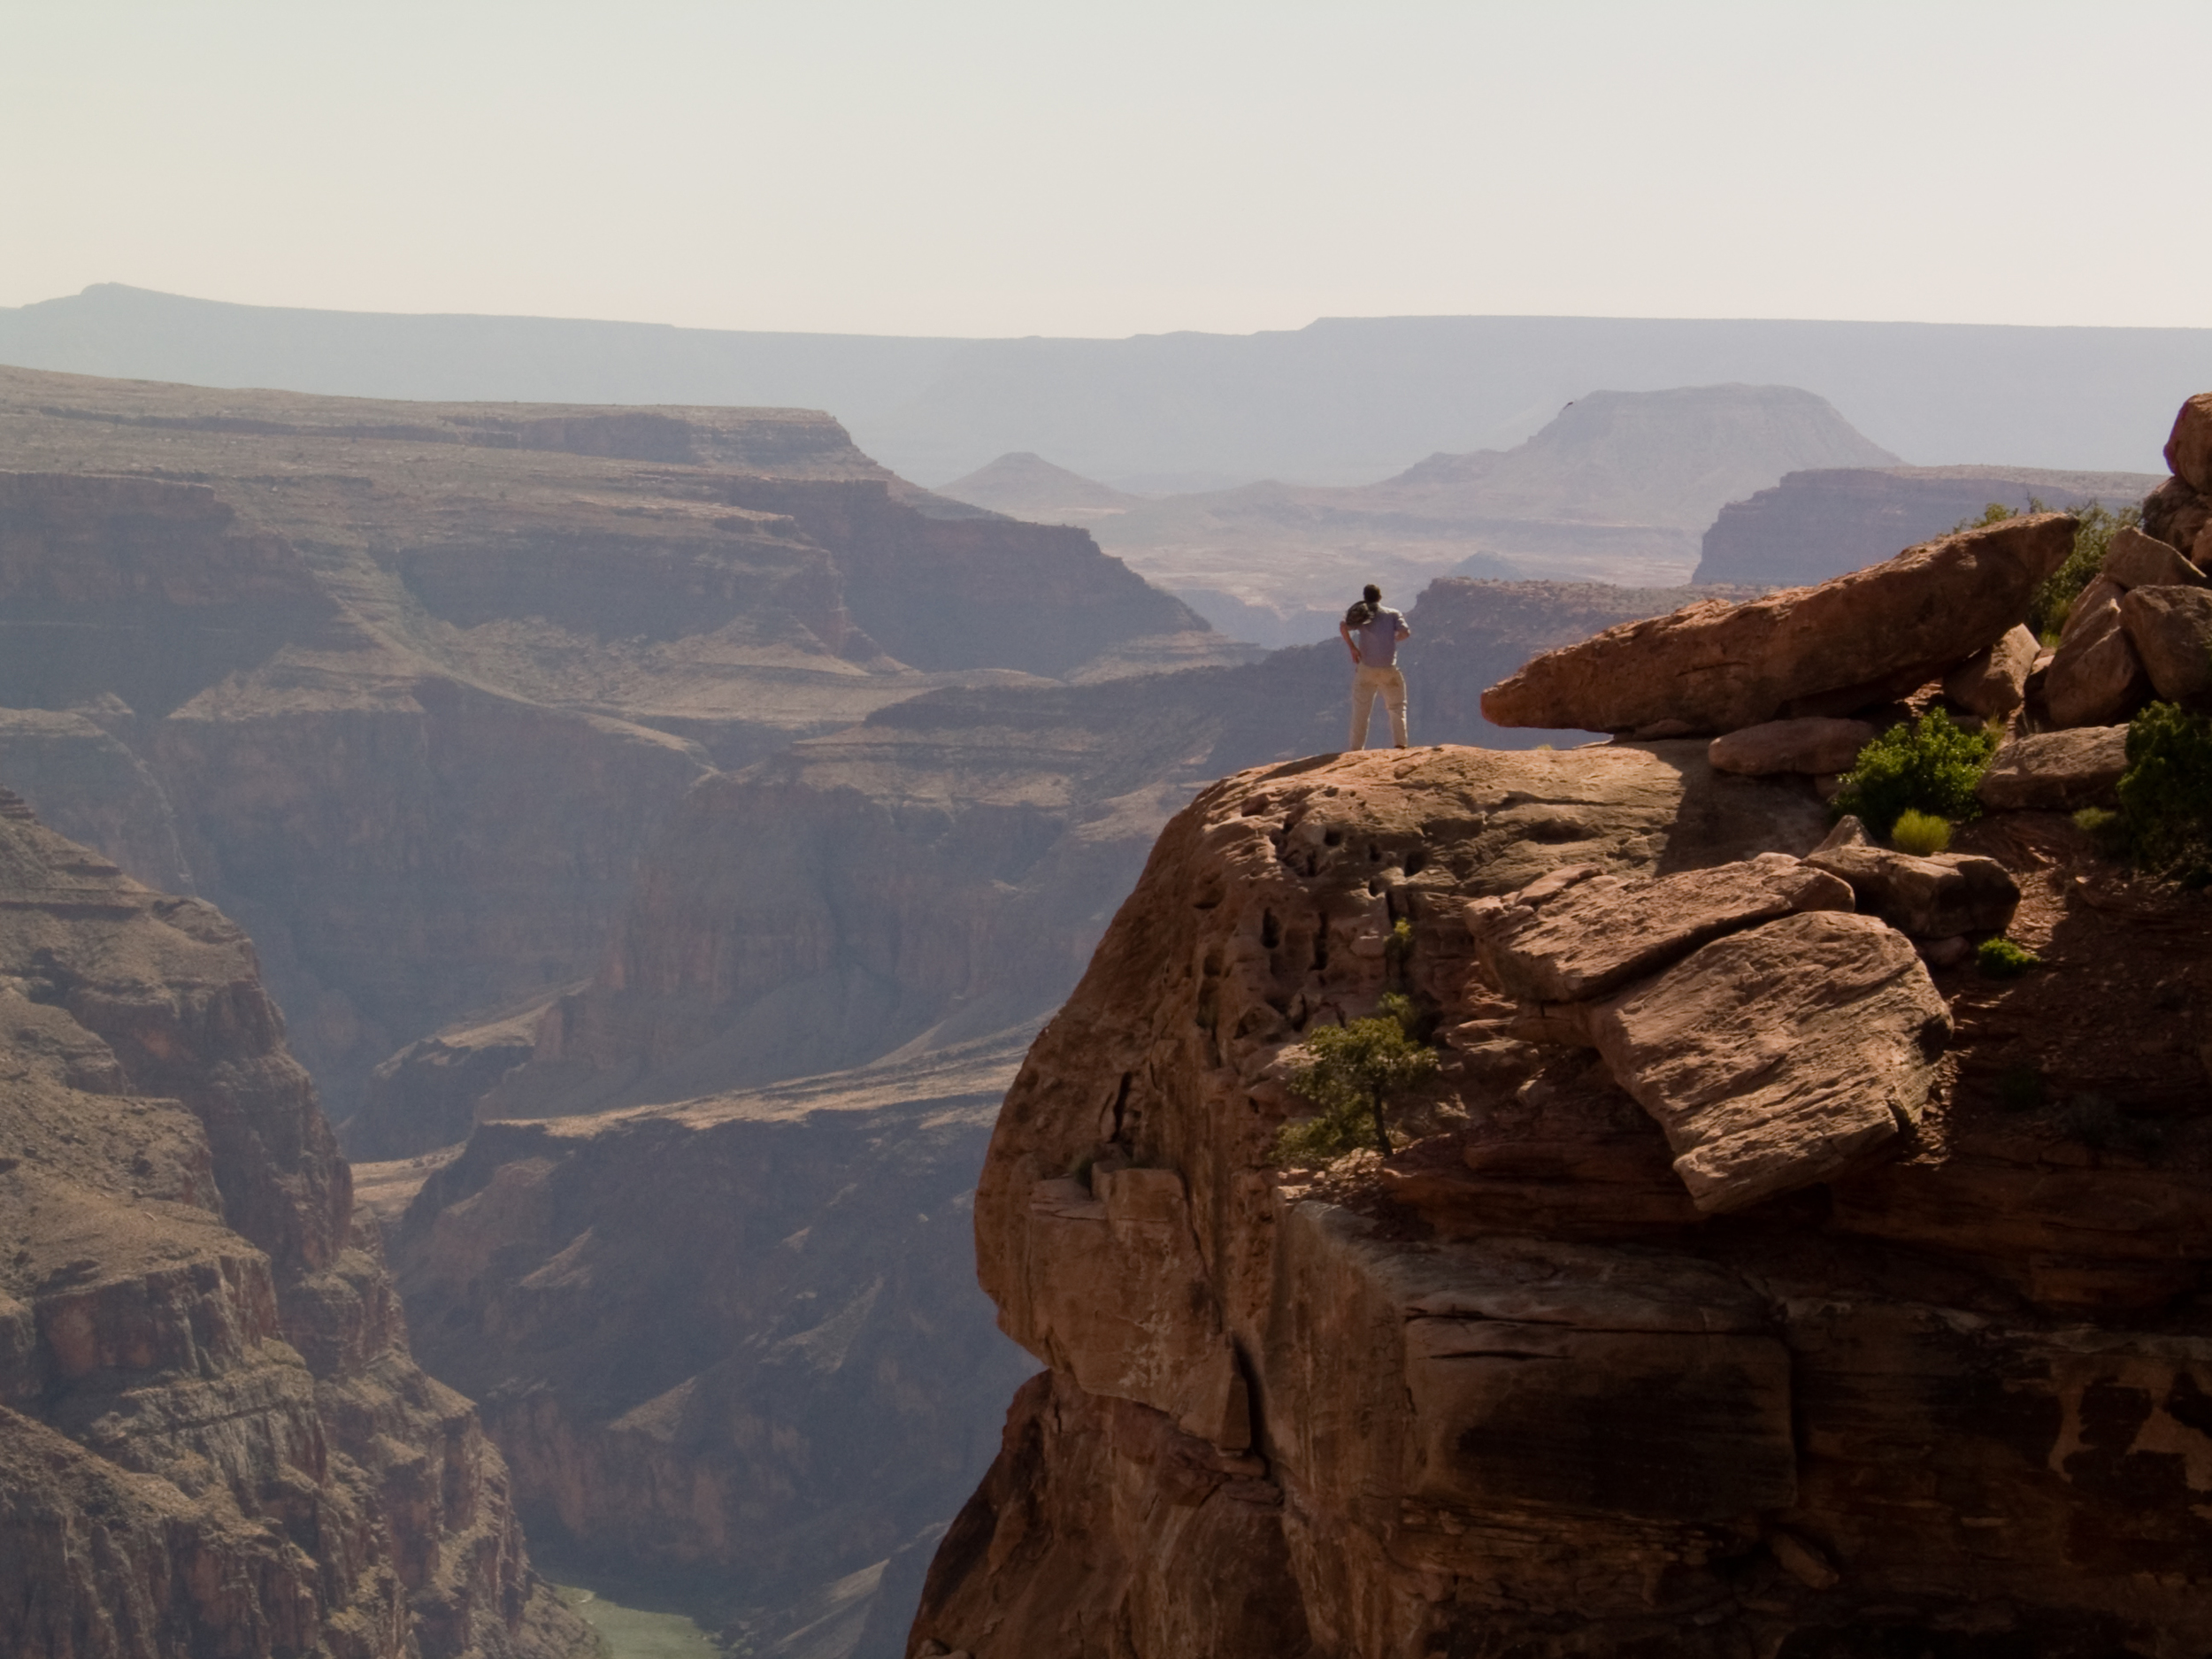 Grand Canyon Project (2010)